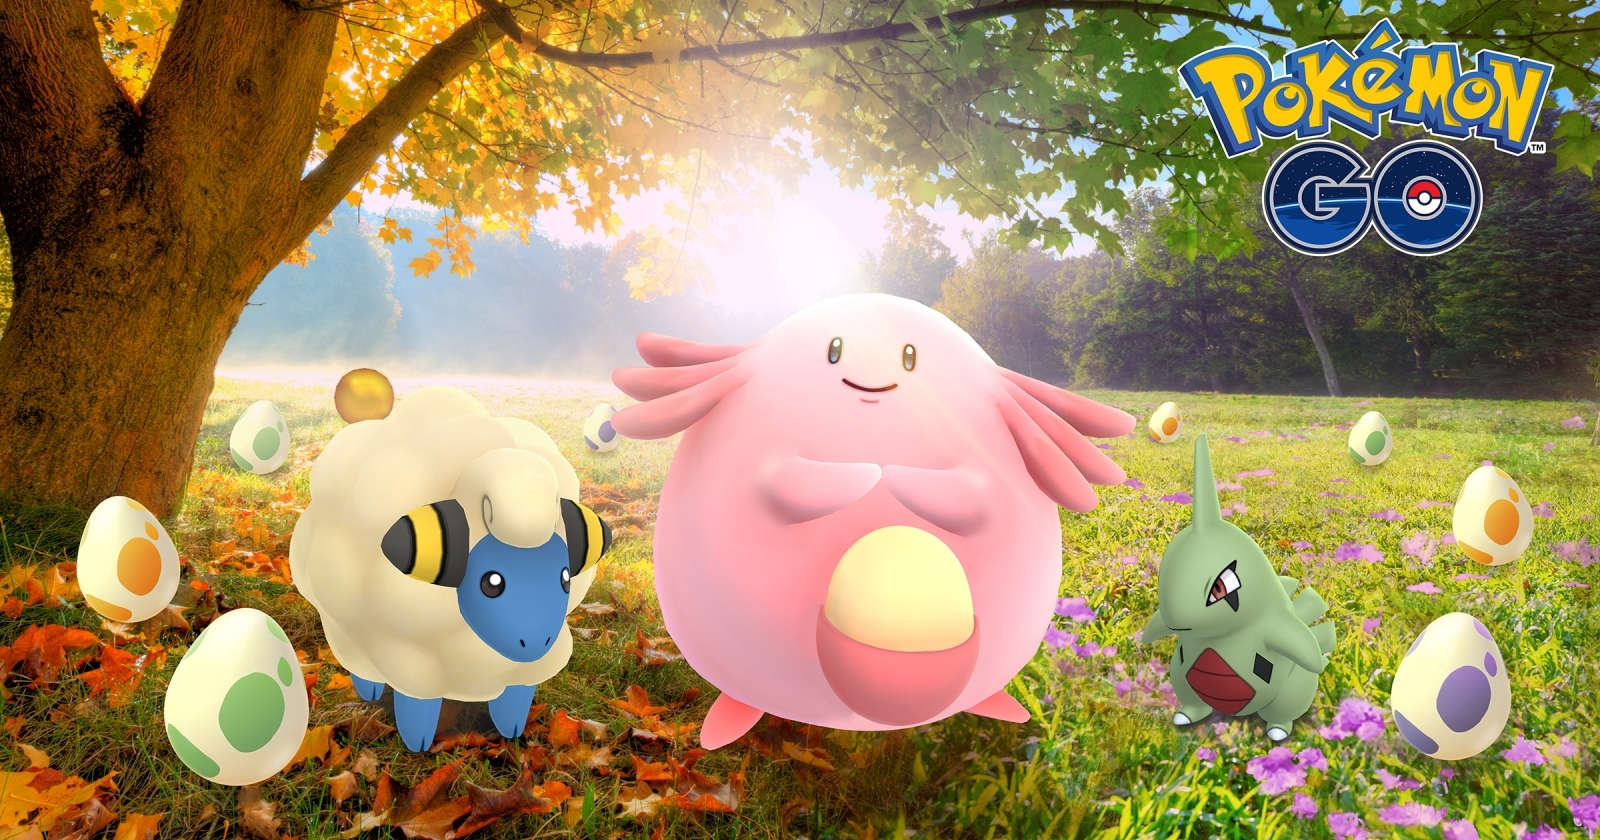 Pokemon GO Will Hold an Egg-cellent Equinox Event